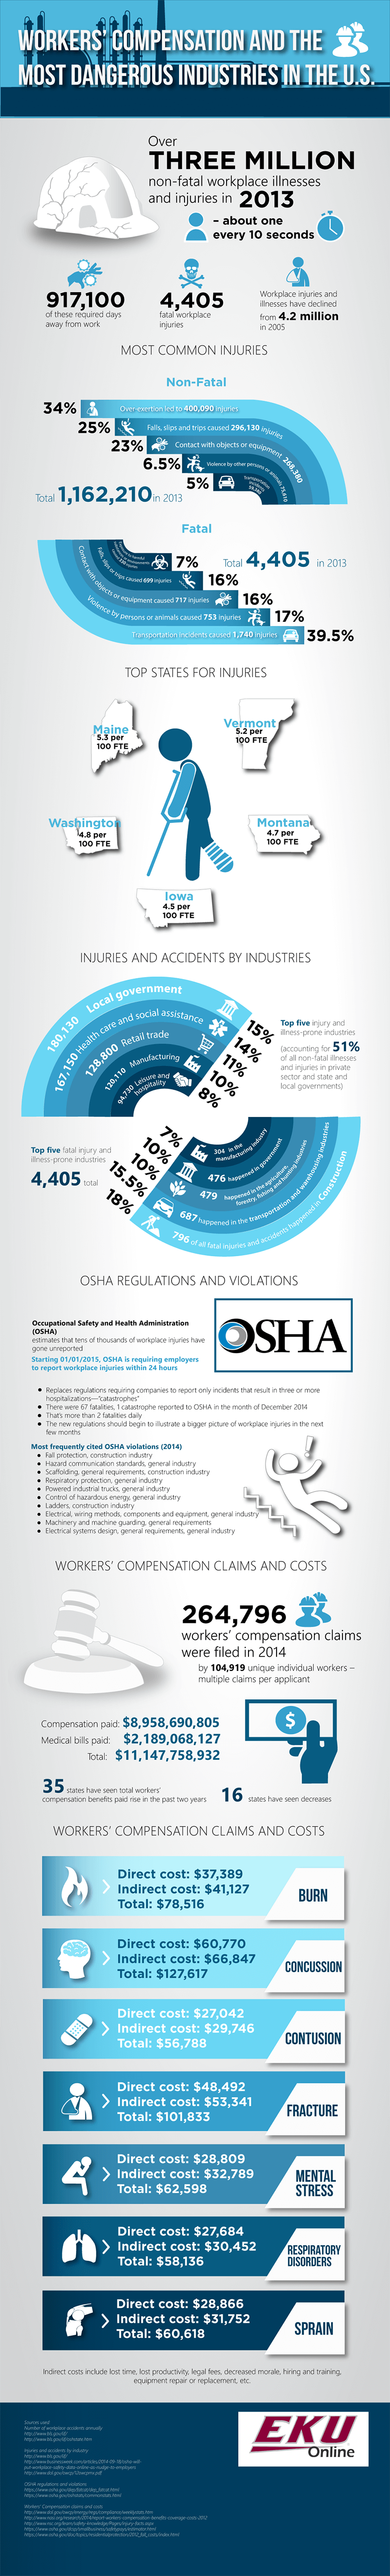 Infographic on Workers Compensation and the Most Dangerous Industries in the U.S.